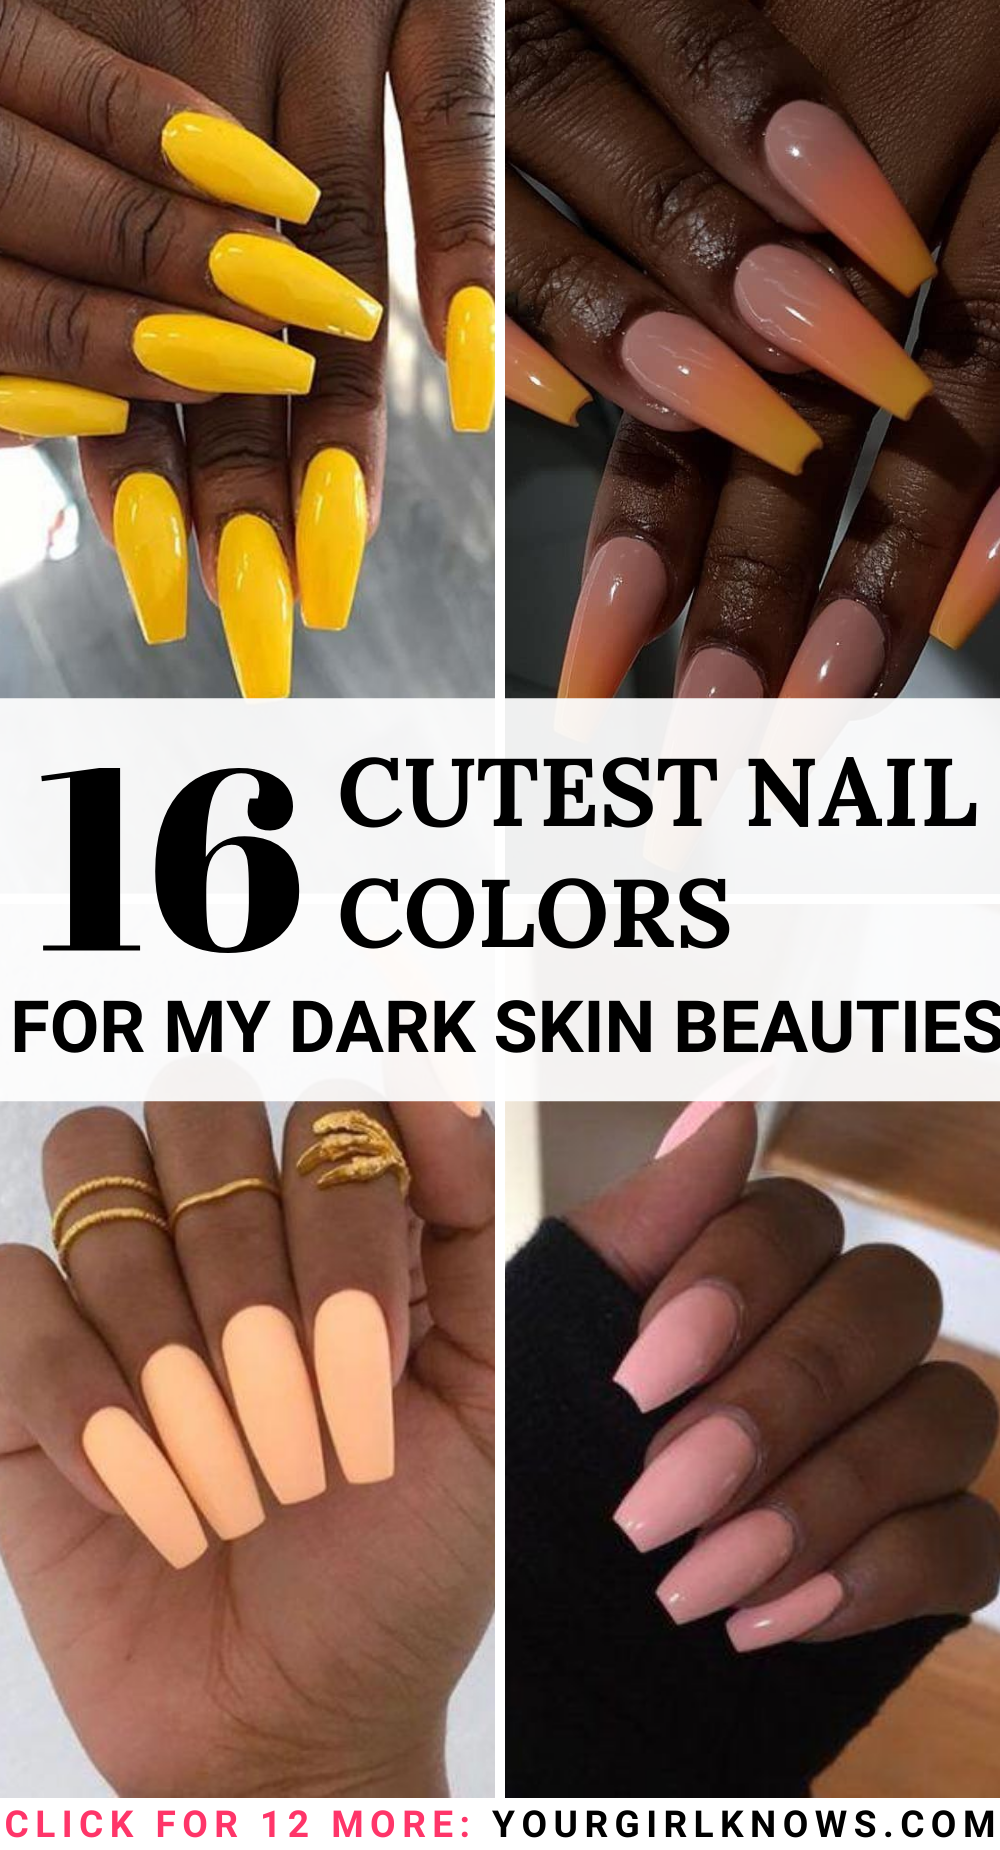 16 Best Colours Dark Skin Nail Polish That You Will Absolutely Love Ygk In 2020 Cute Nail Colors Dark Skin Nail Polish Nail Colors